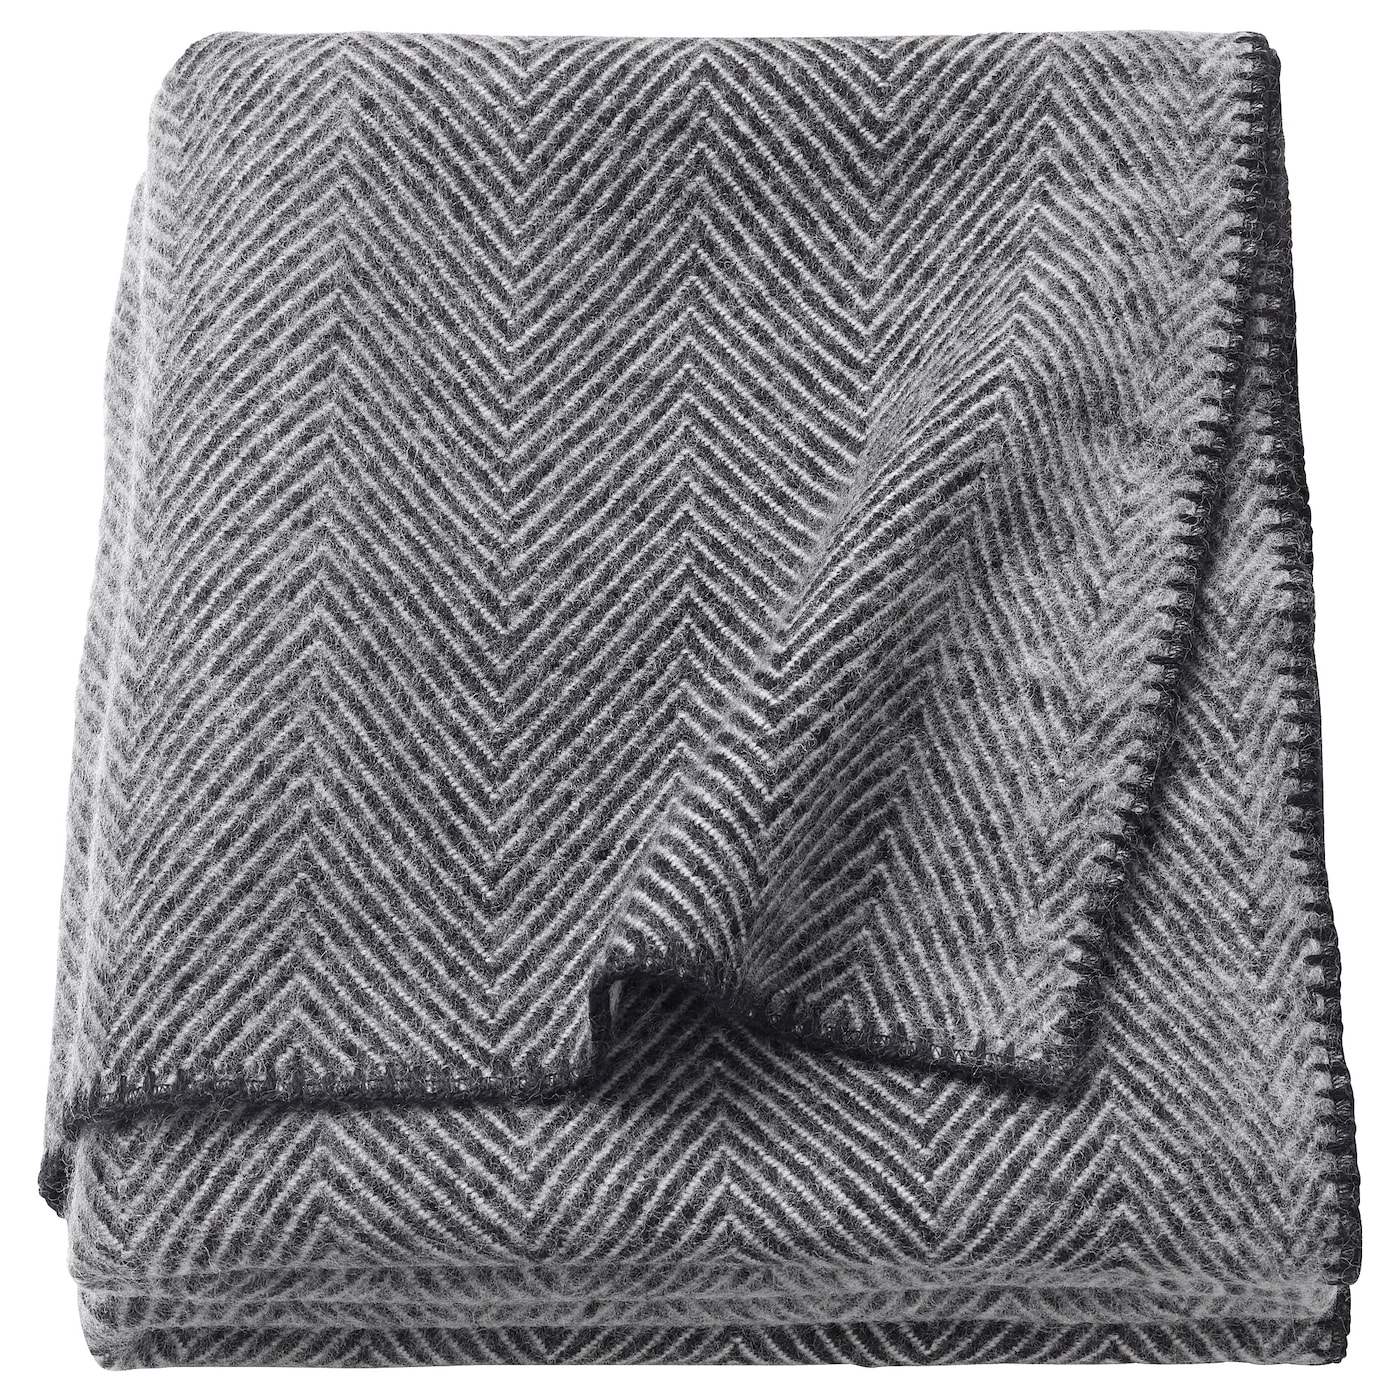 IKEA STRIMLÖNN throw